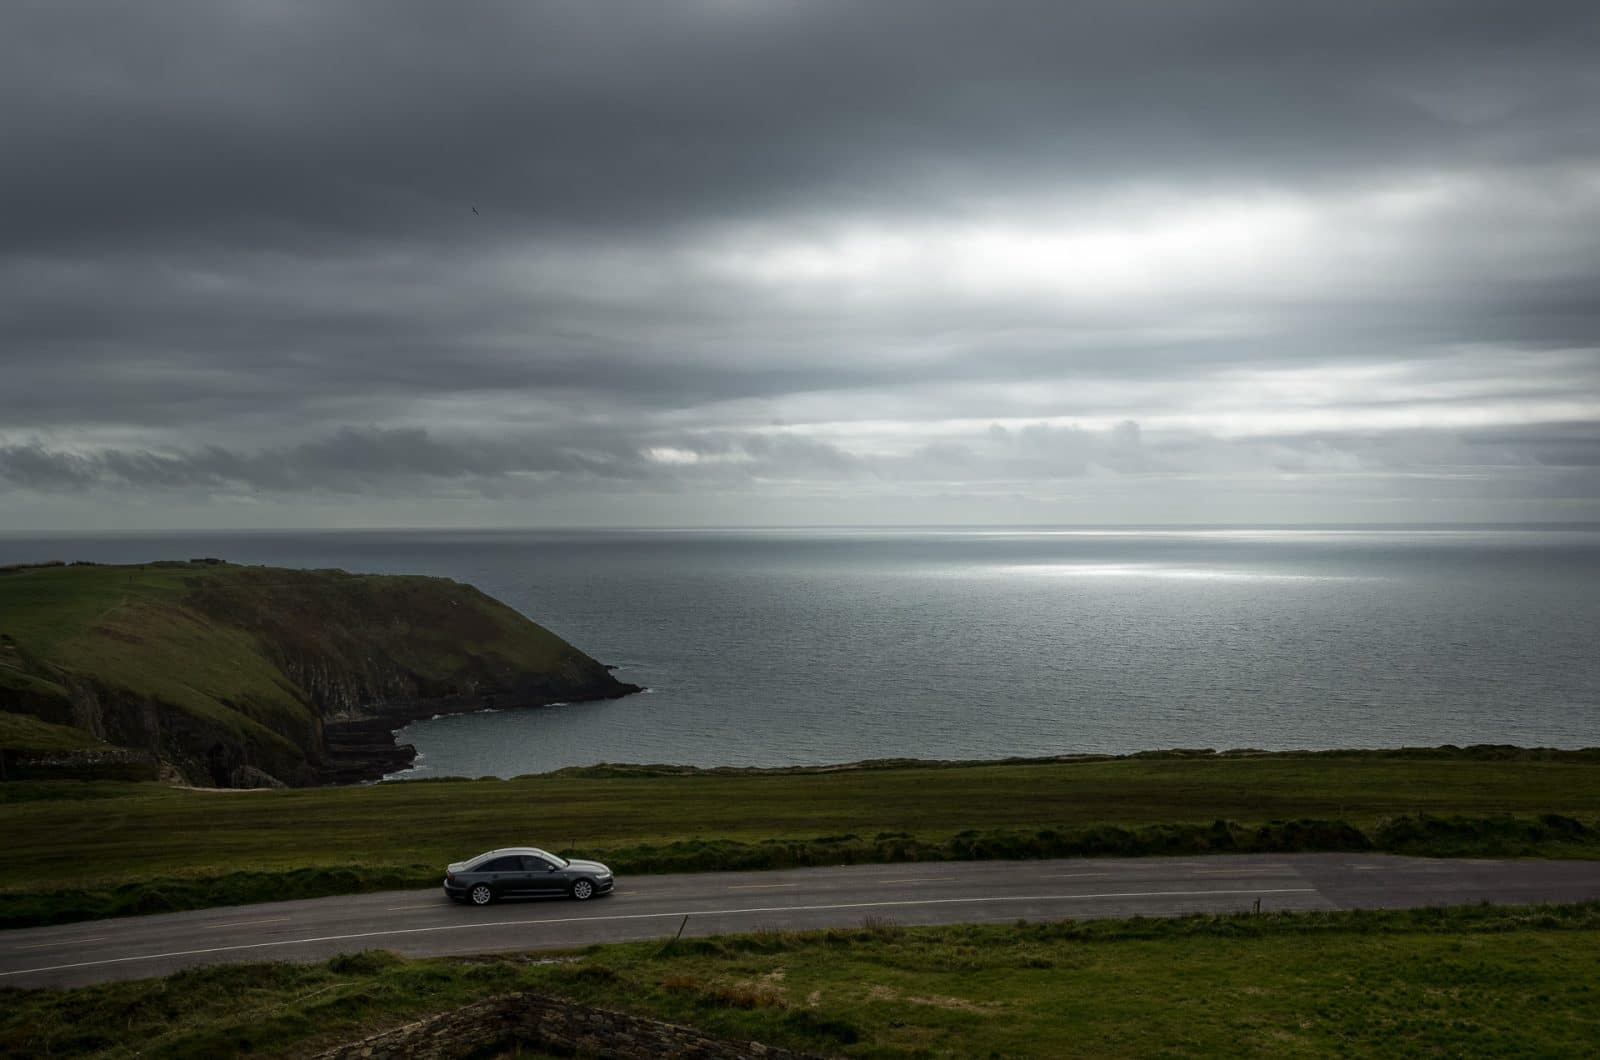 a car driving on coastal road in Cork Country near Old head of kinsale